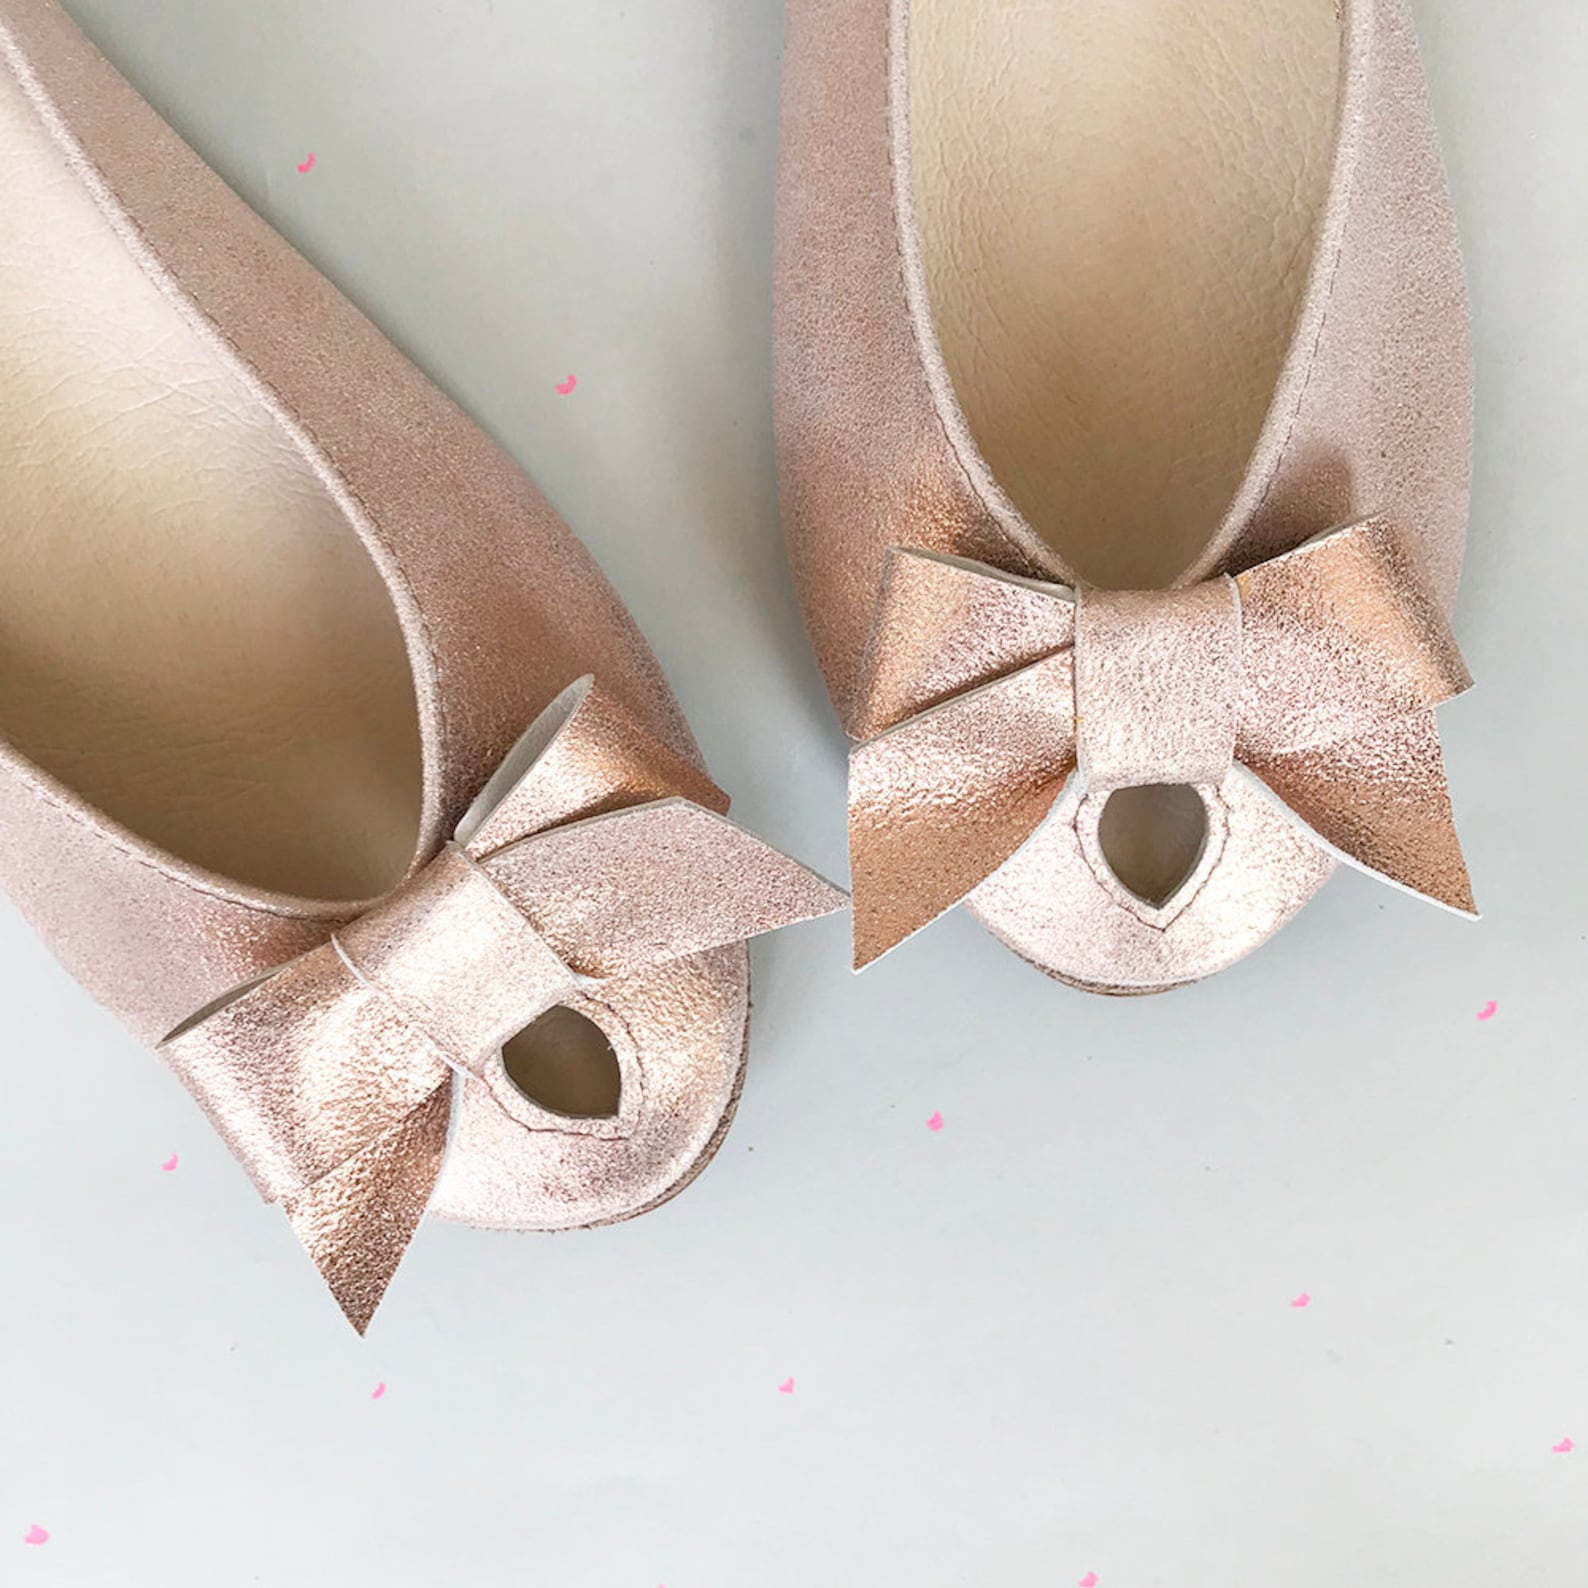 wedding shoes. rose gold flats. bridal shoes flats. rose ballet flats shoes. leather shoes. peep toe. brautschuhe. scarpe da spo